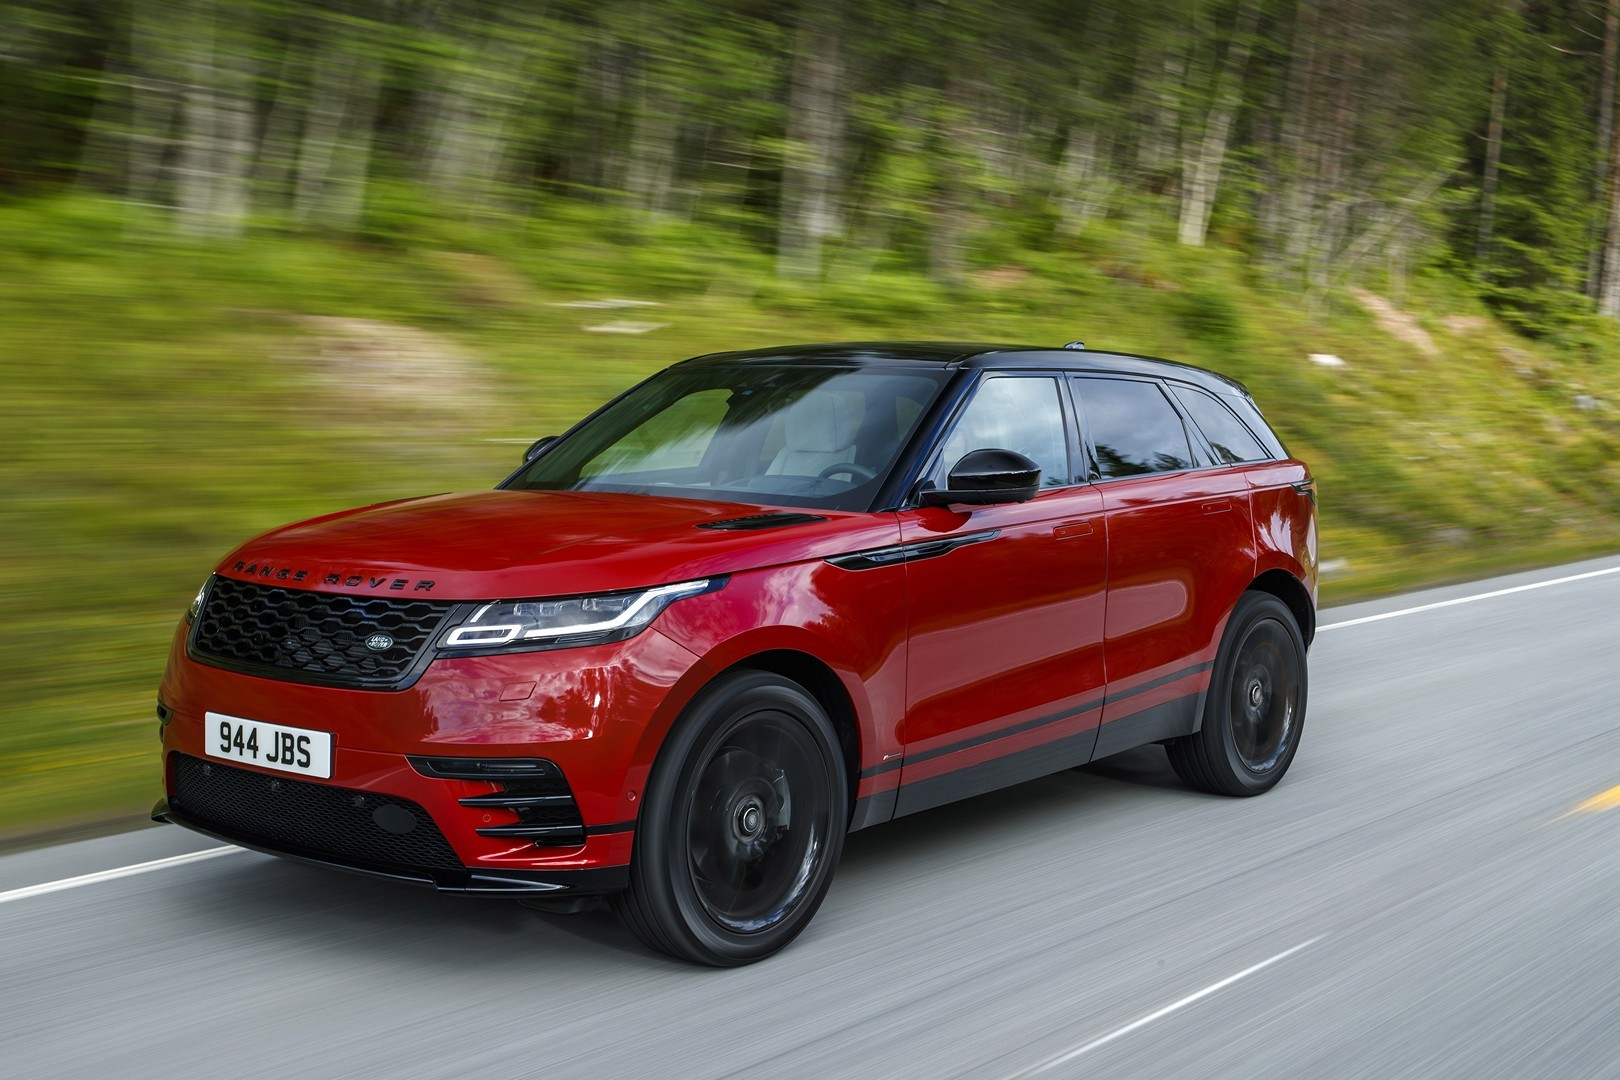 The Red Suv You Want Range Rover Velar R Dynamic Hse Black Pack